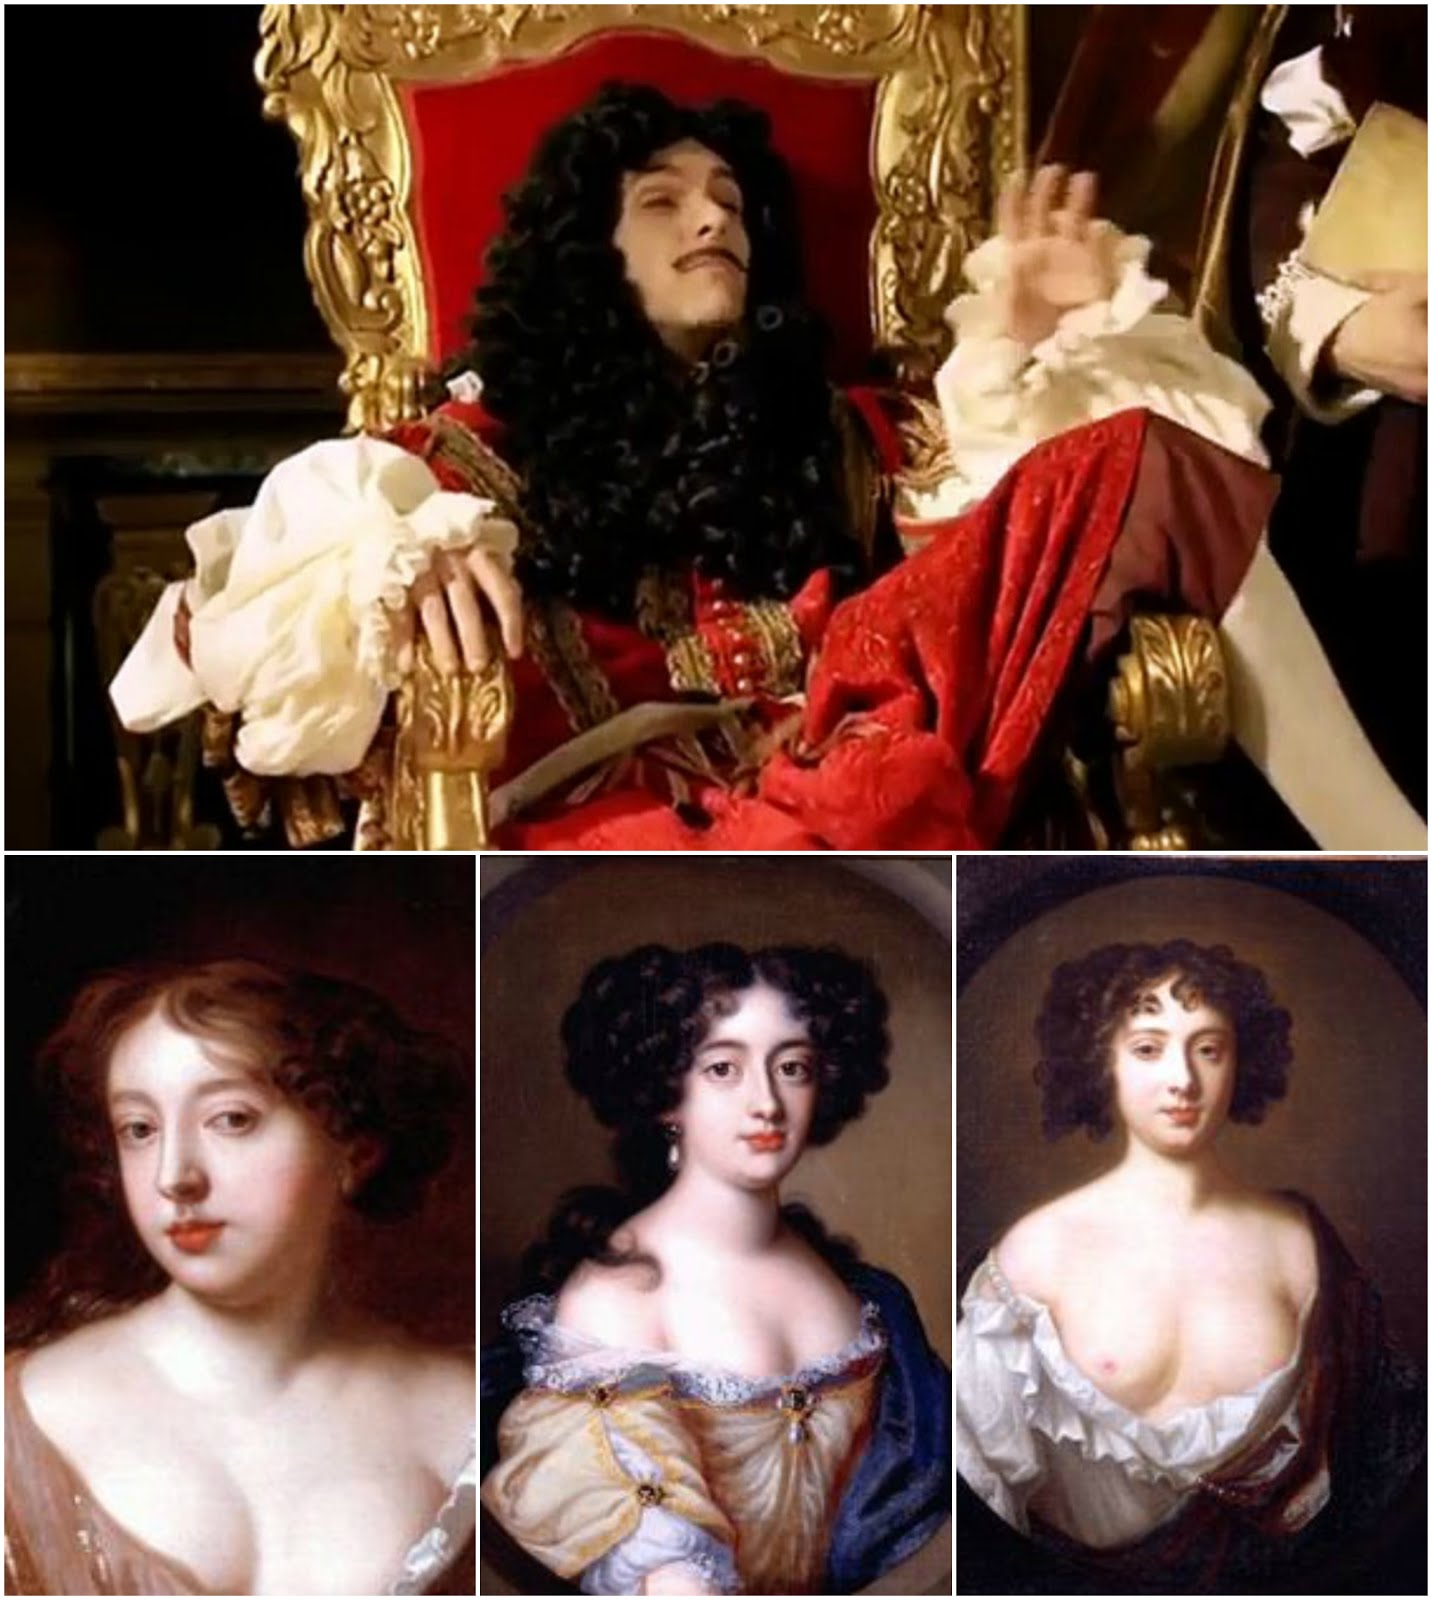 king charles ii Shop for customizable king charles ii clothing on zazzle check out our t-shirts, polo shirts, hoodies, & more great items start browsing today.